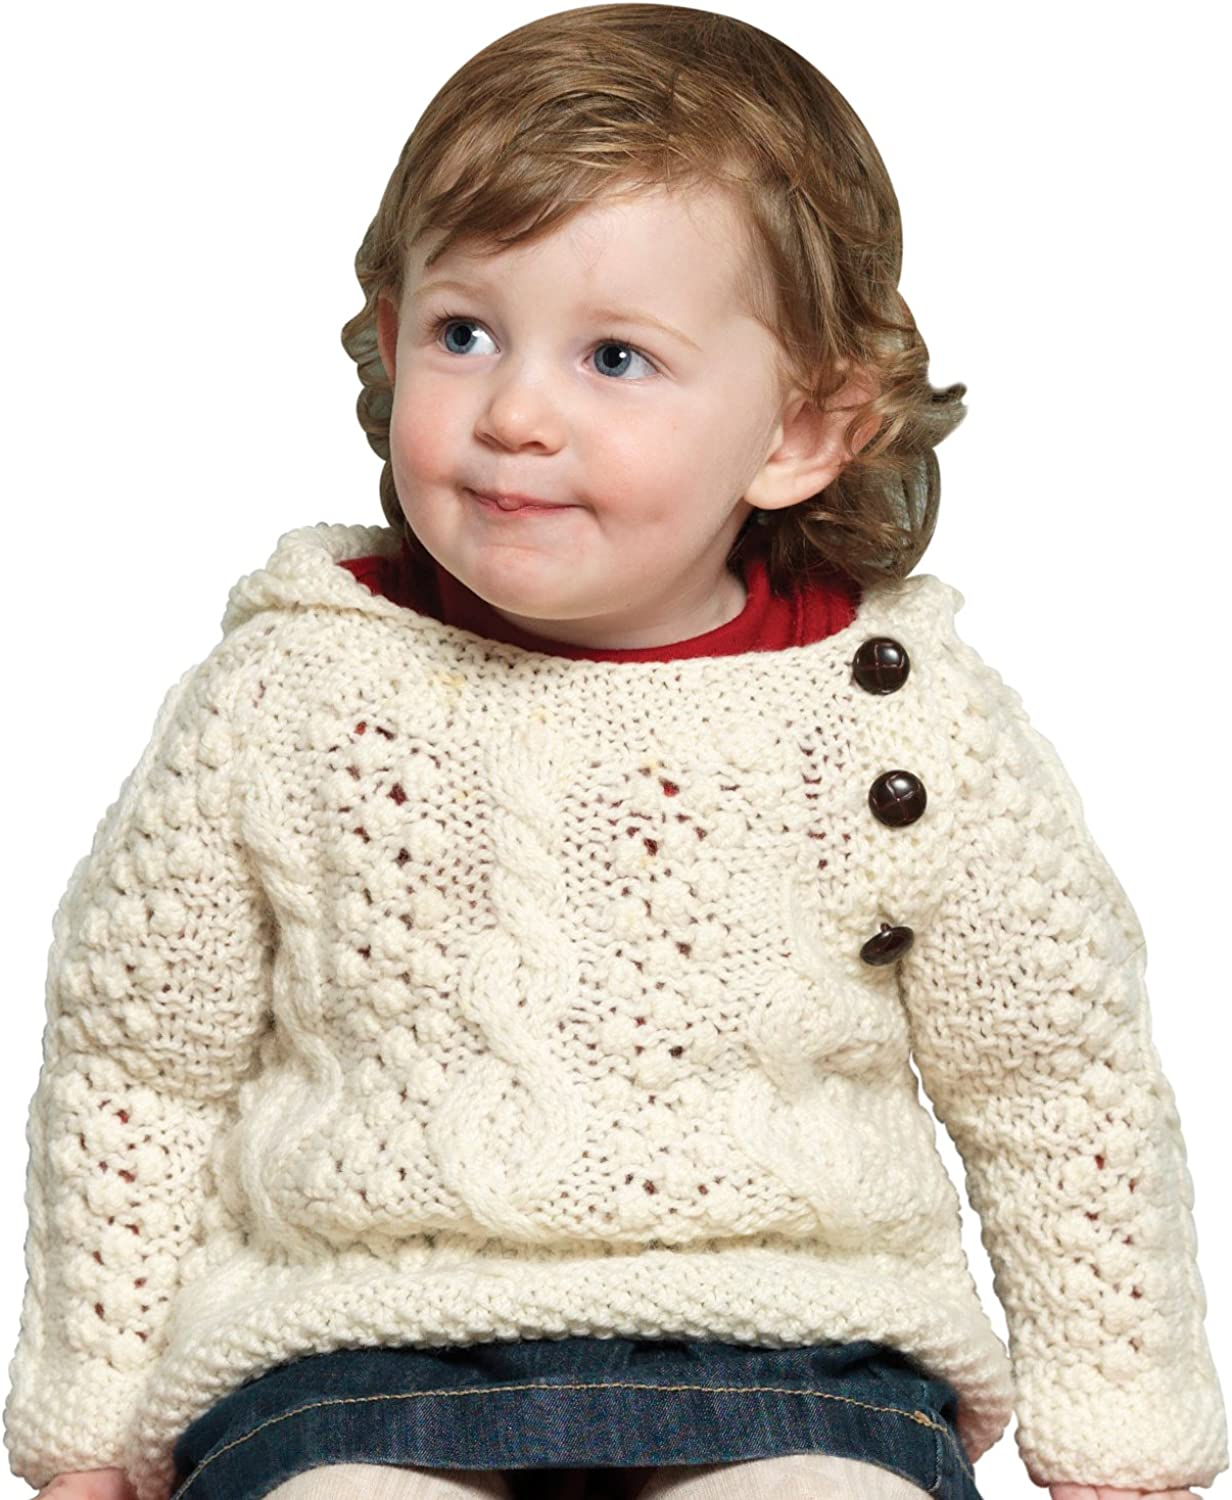 Irish sweater for baby size 36 months